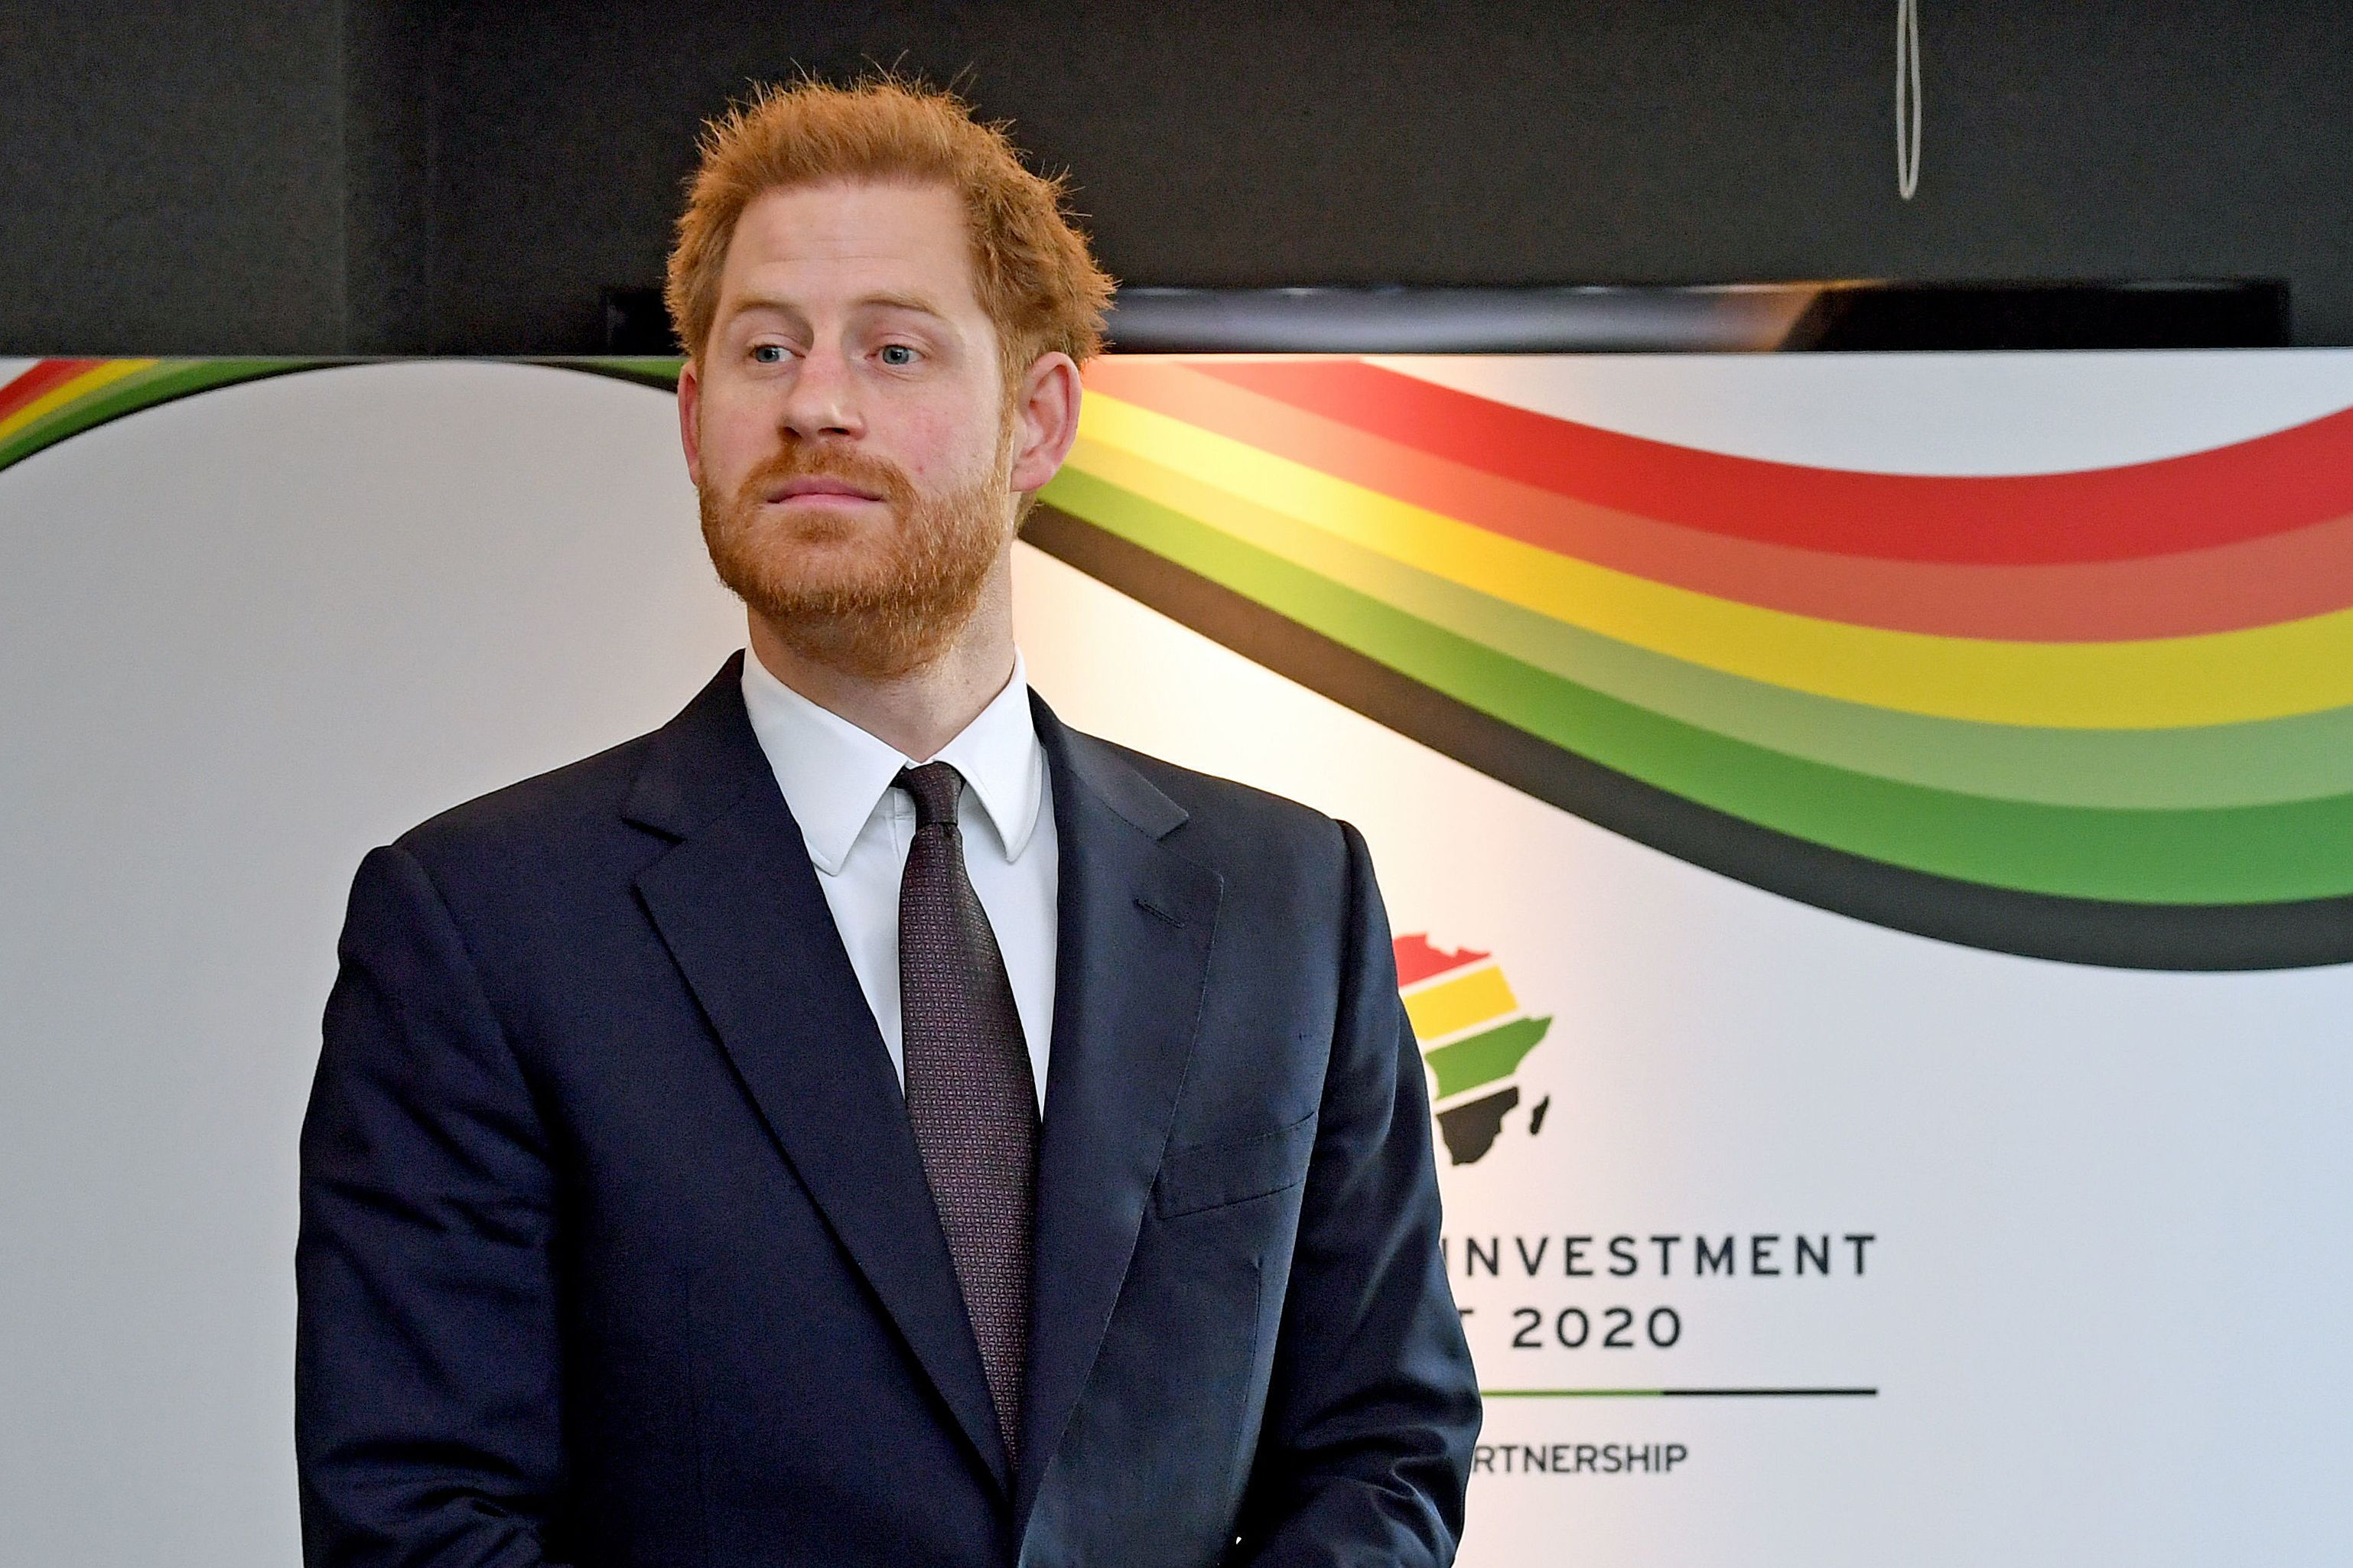 Britain's Prince Harry, Duke of Sussex reacts as he waits to meet a guest during the UK-Africa Investment Summit in London on January 20, 2020.